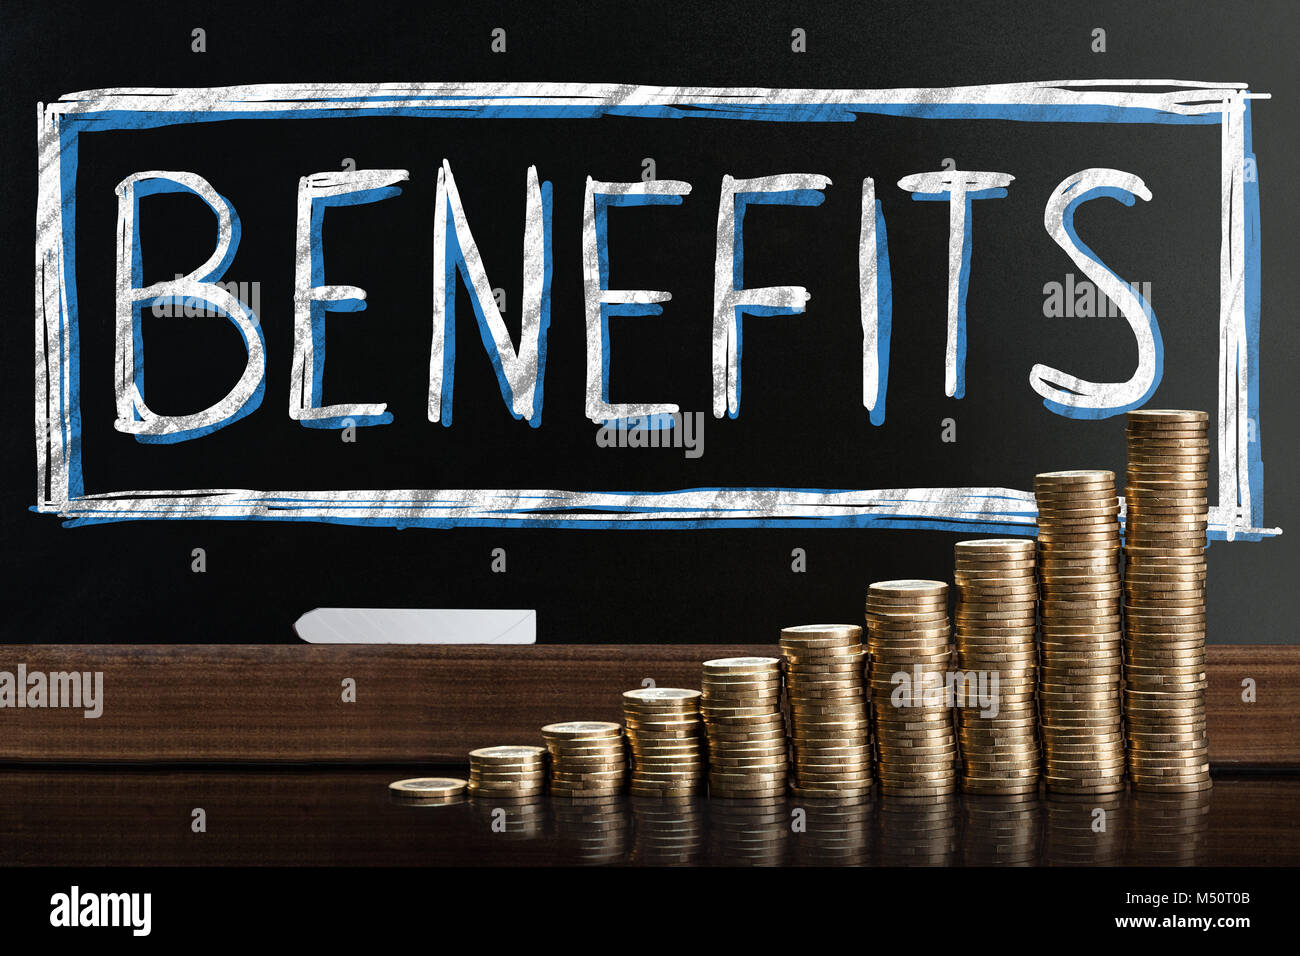 Social Security Benefits Drawn On Chalkboard Behind Coin Stacks - Stock Image